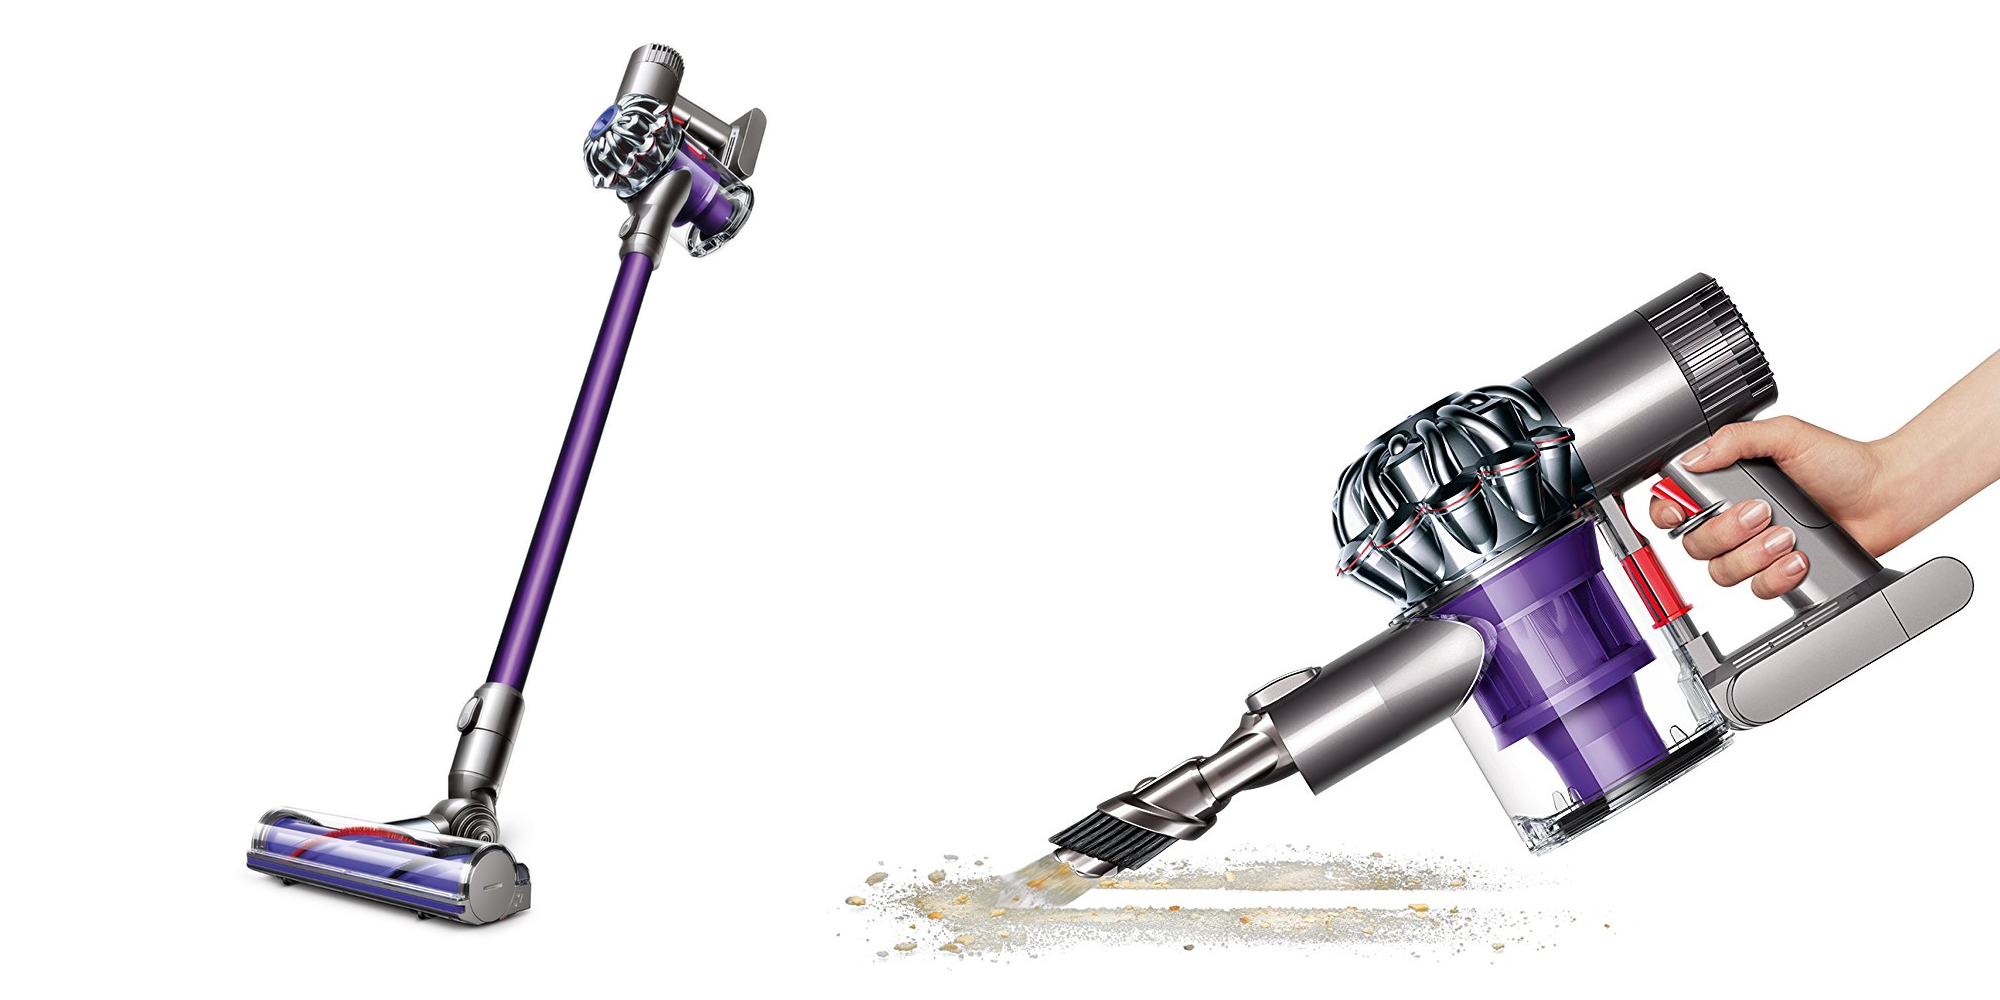 Image of: Cord Free Dysons V6 Animal Cordfree Vacuum Down To 200 At Amazon cert Refurb Orig 500 9to5toys Dysons V6 Animal Cordfree Vacuum Down To 200 At Amazon cert